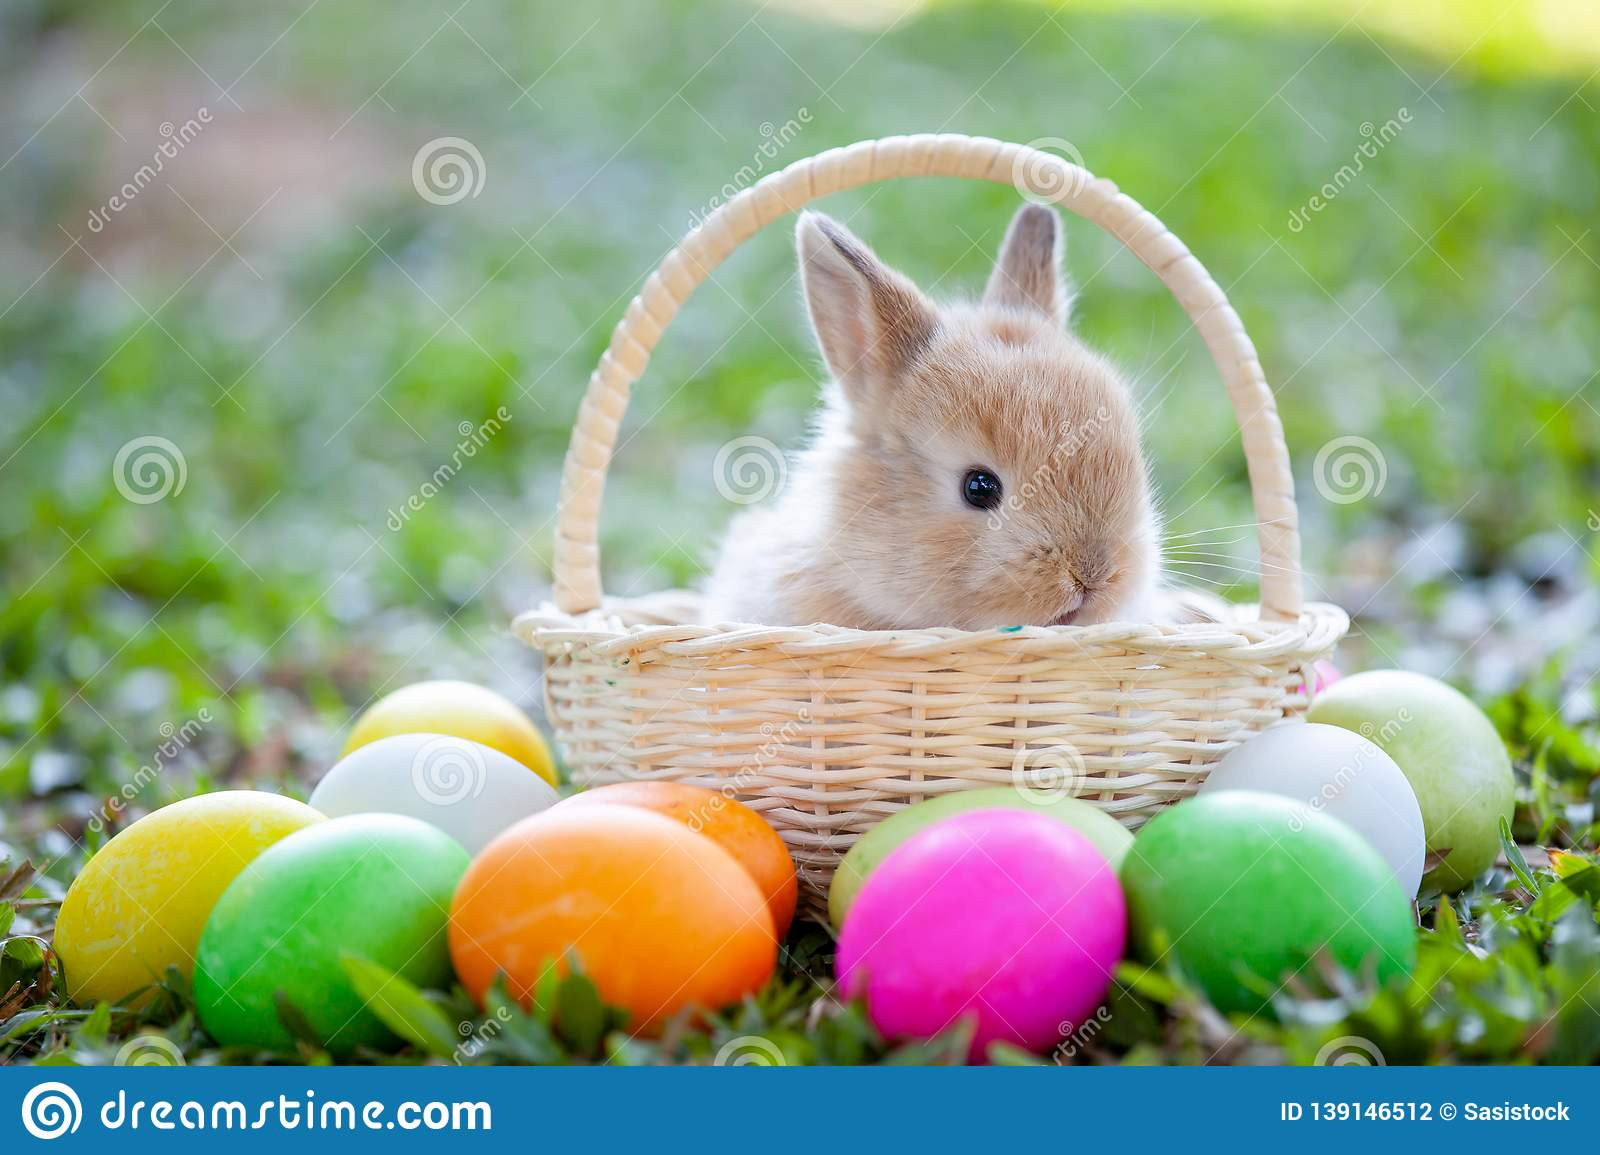 Cute Bunny In The Basket And Easter Eggs In The Meadow ...